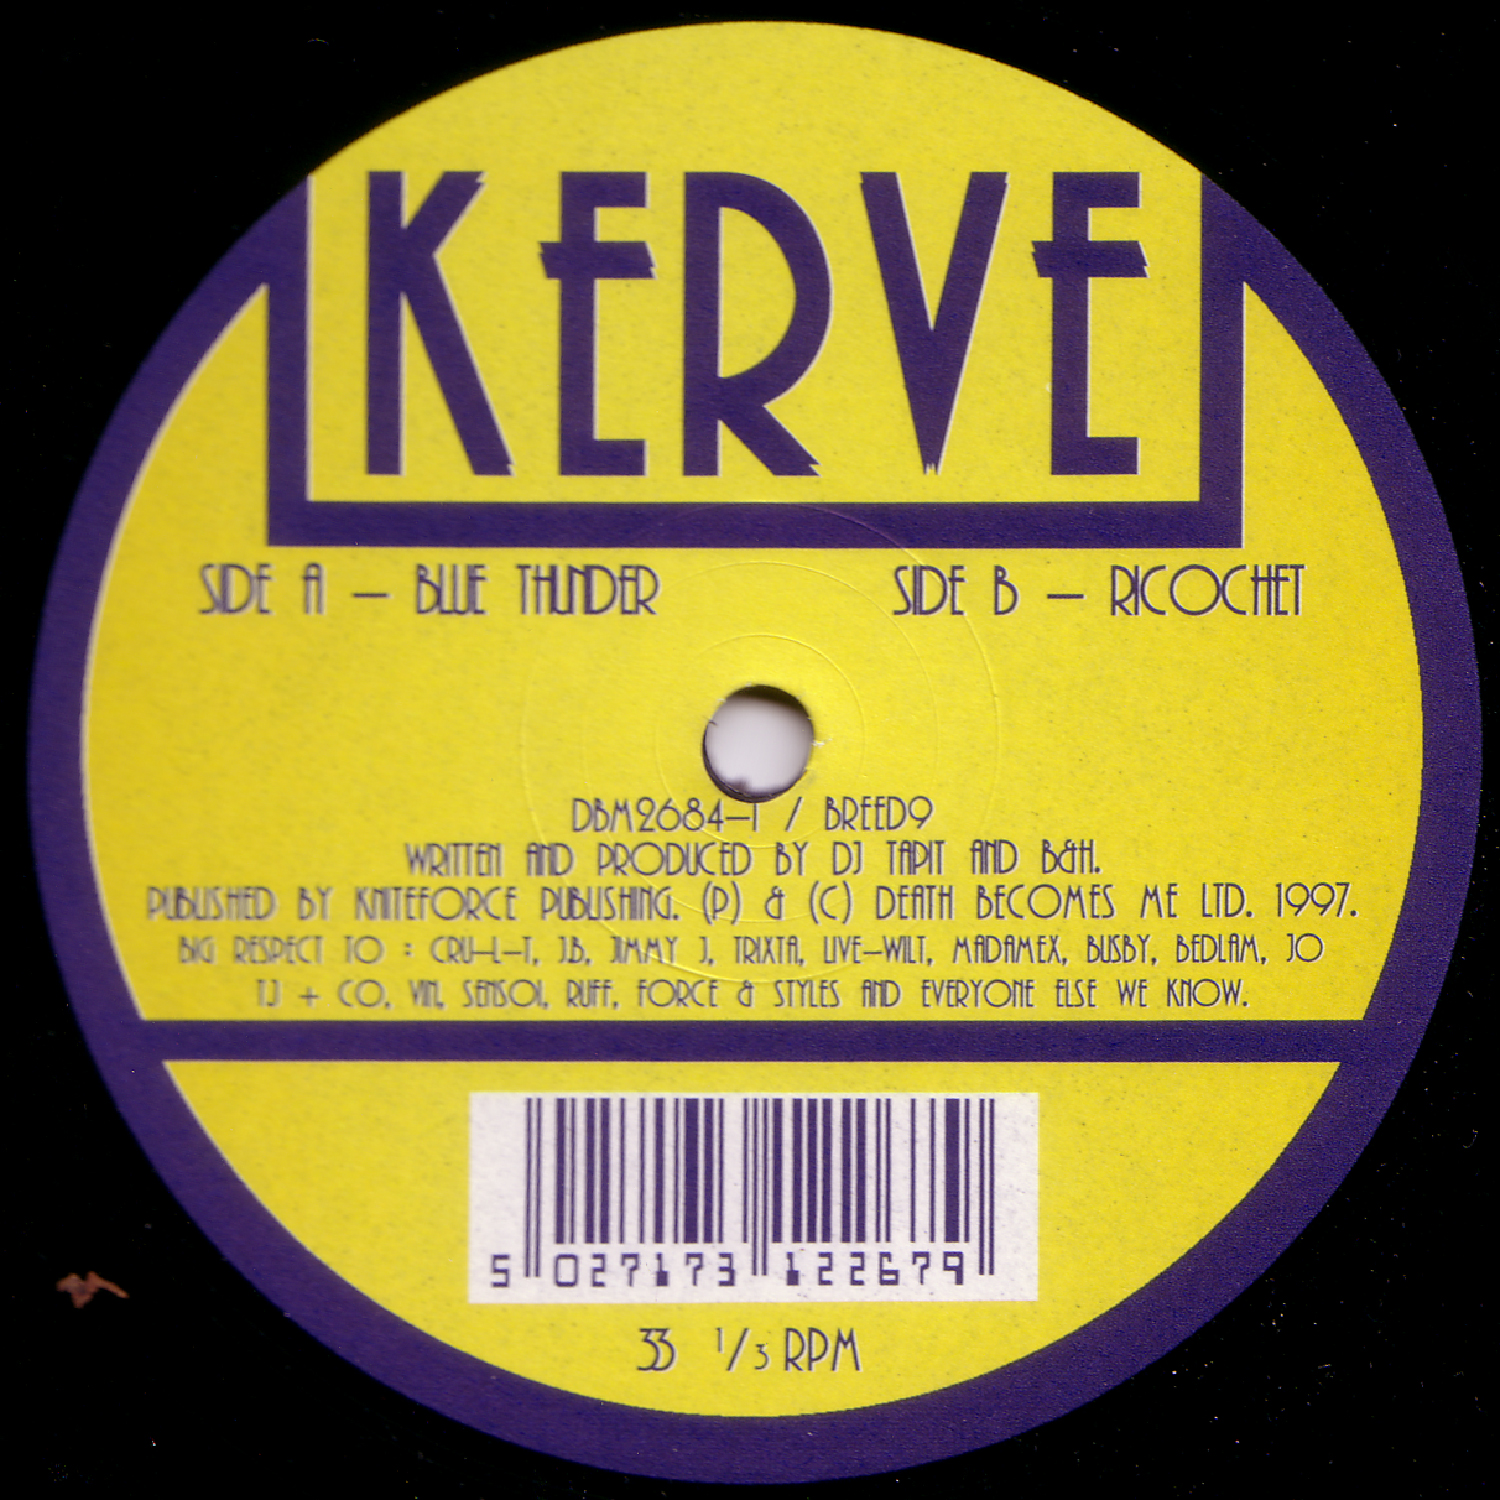 [BREED09] Kerve - Blue Thunder EP (Digital Only)